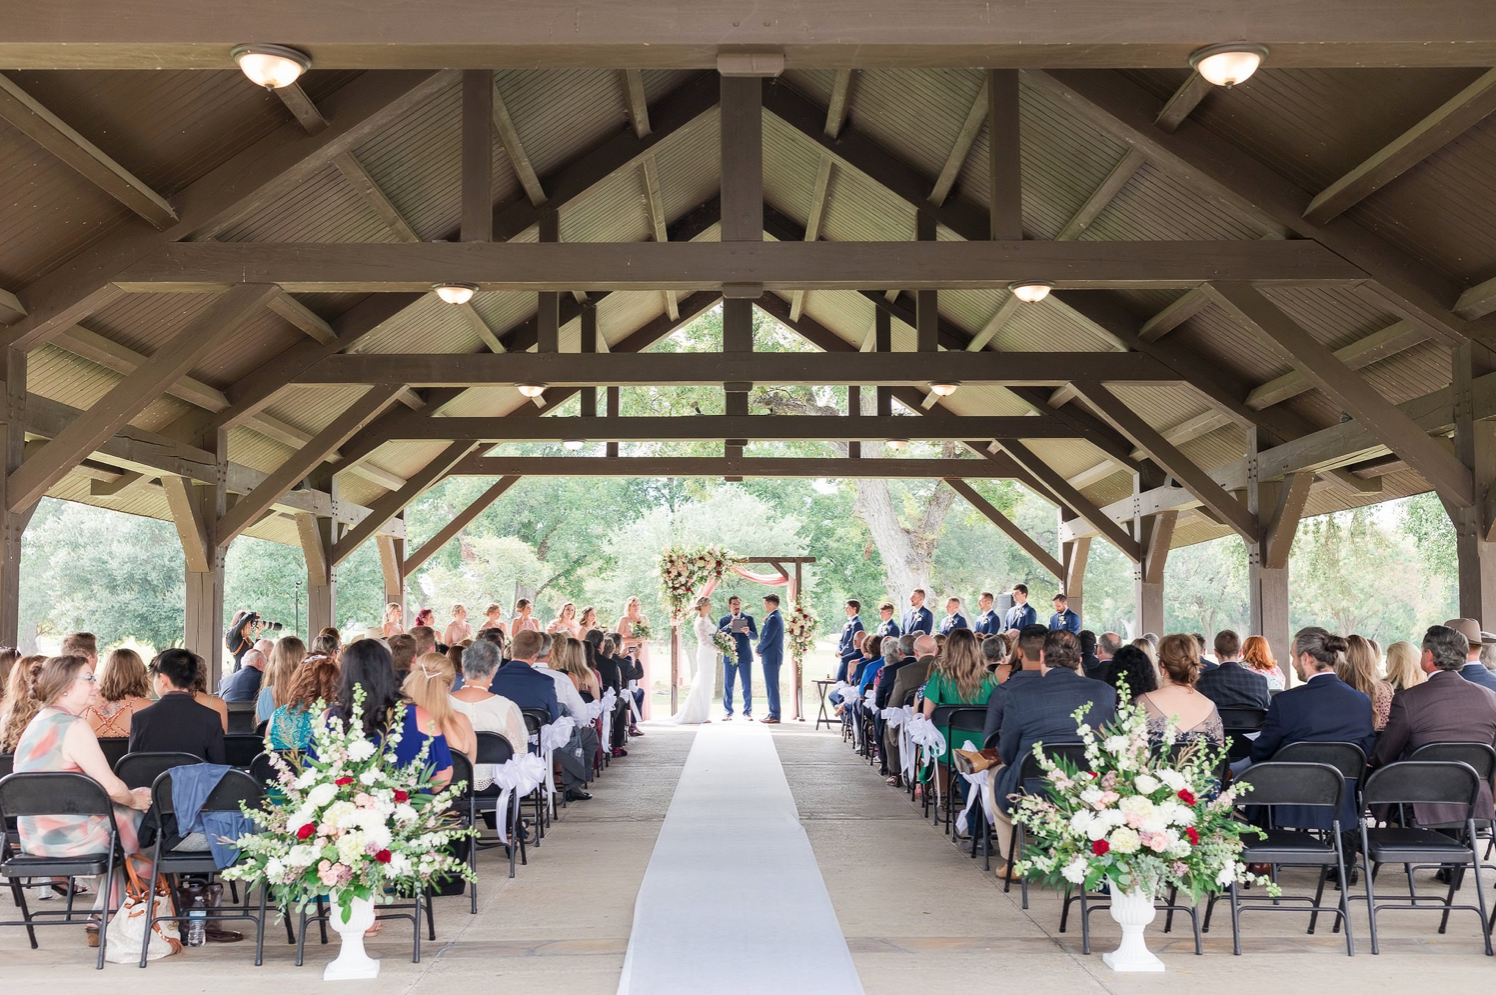 A wedding couple is standing at the altar and their guests are sitting in front of them at the pavilion of the Brackenridge Park Golf Course.